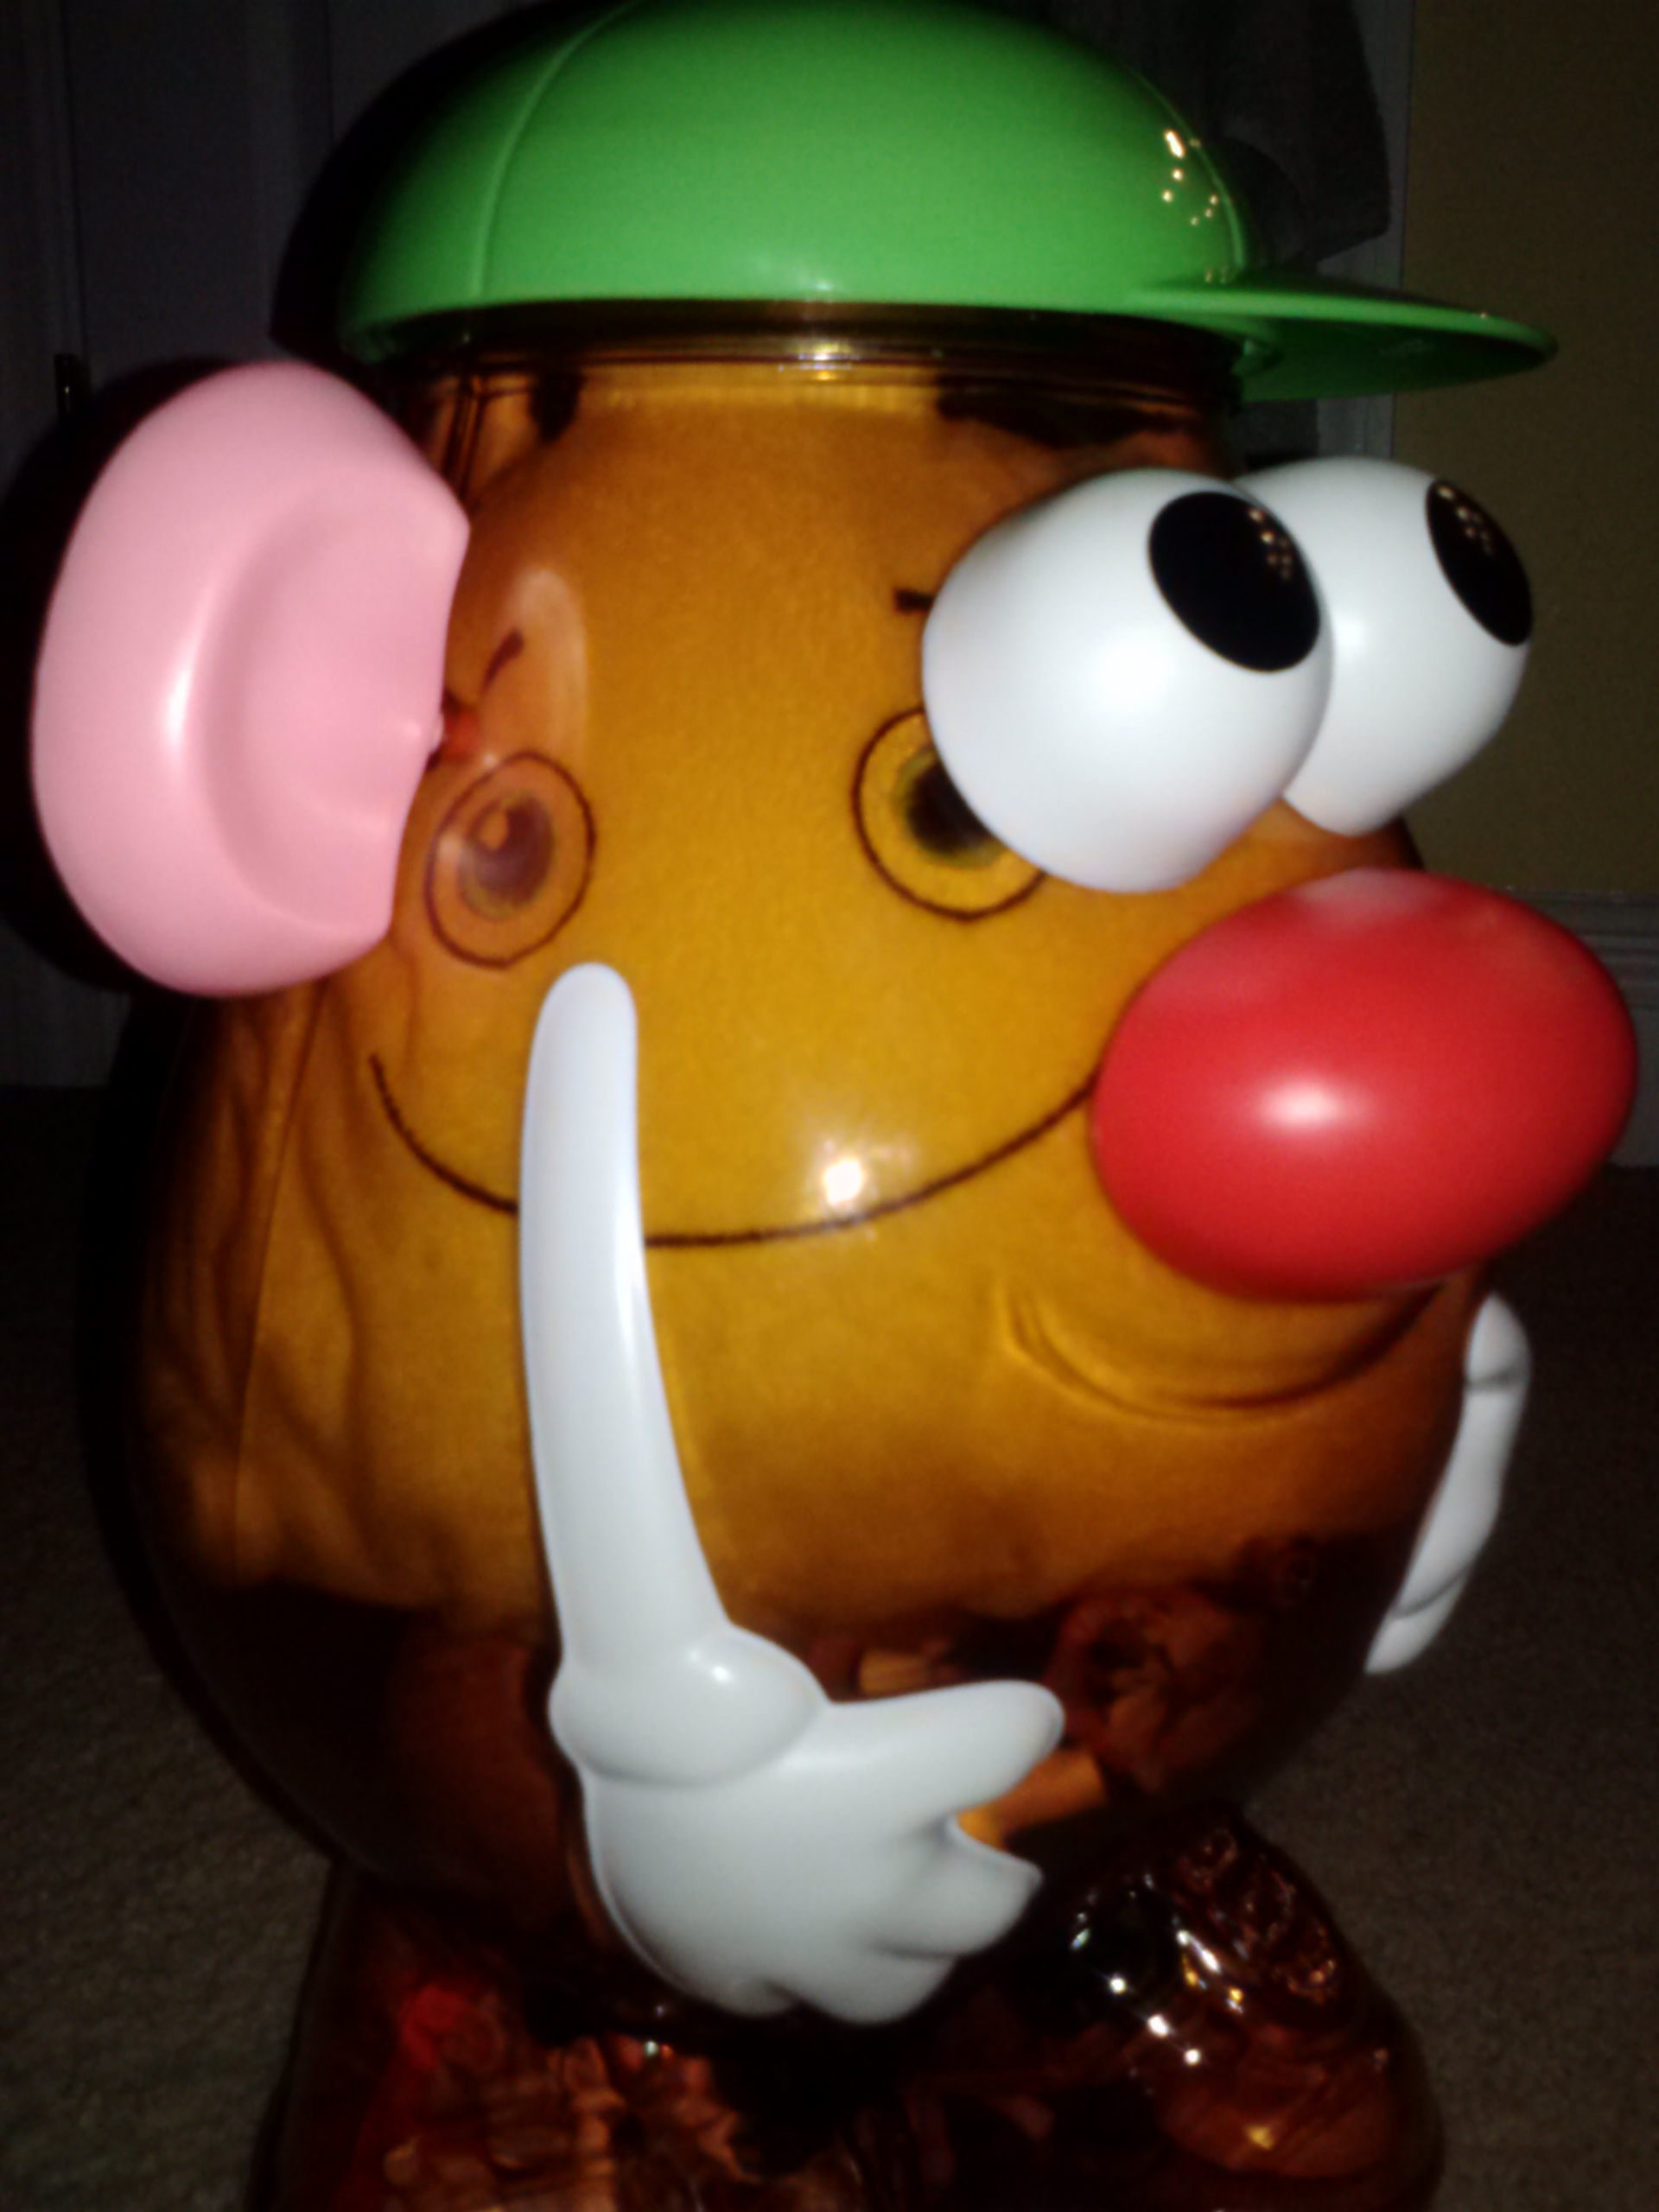 Help! I'm stuck in Mr.Potato Head and I can't get out!